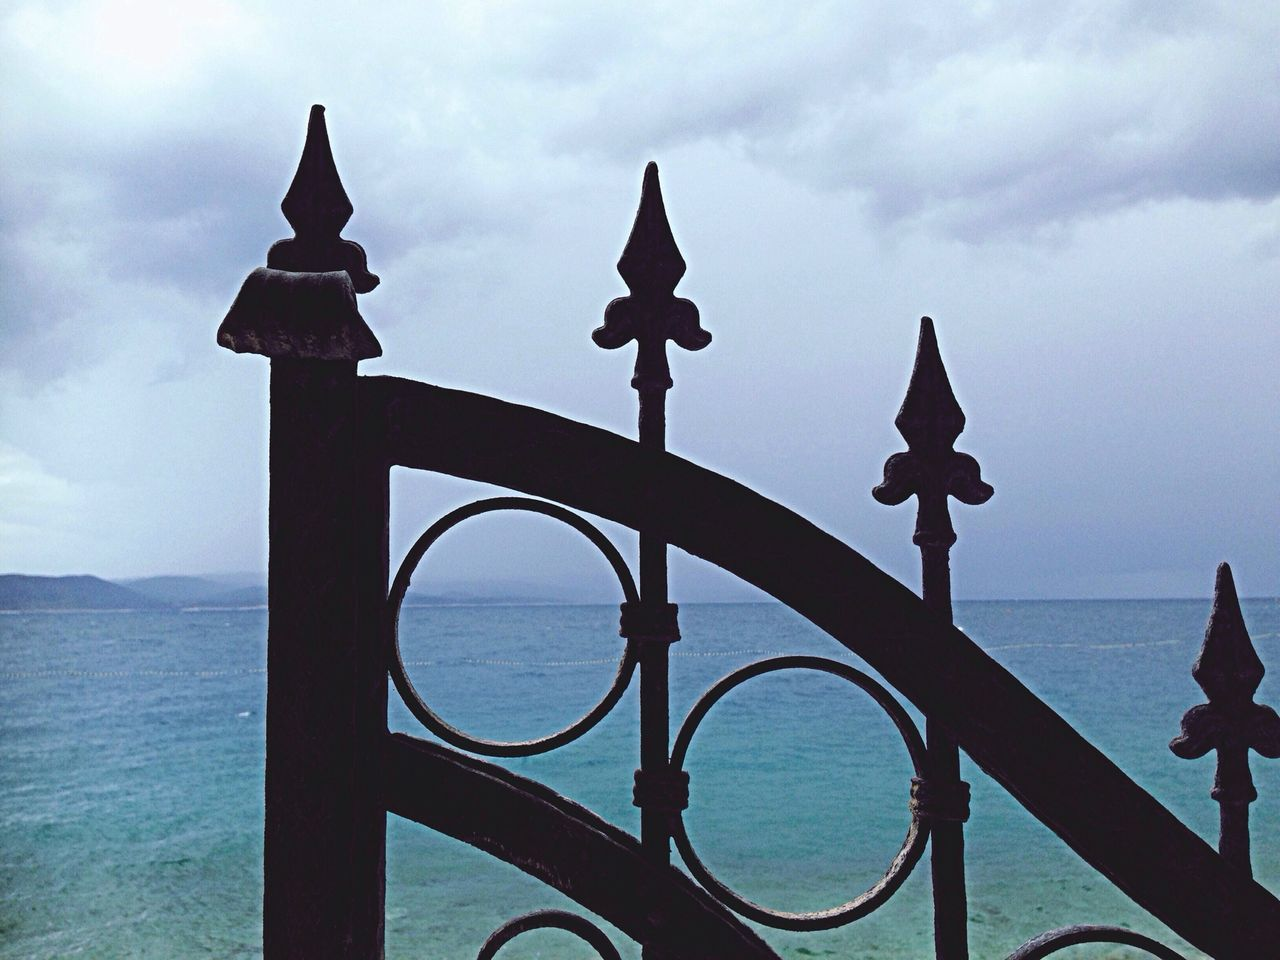 Metal Gate Against Sea And Cloudy Sky